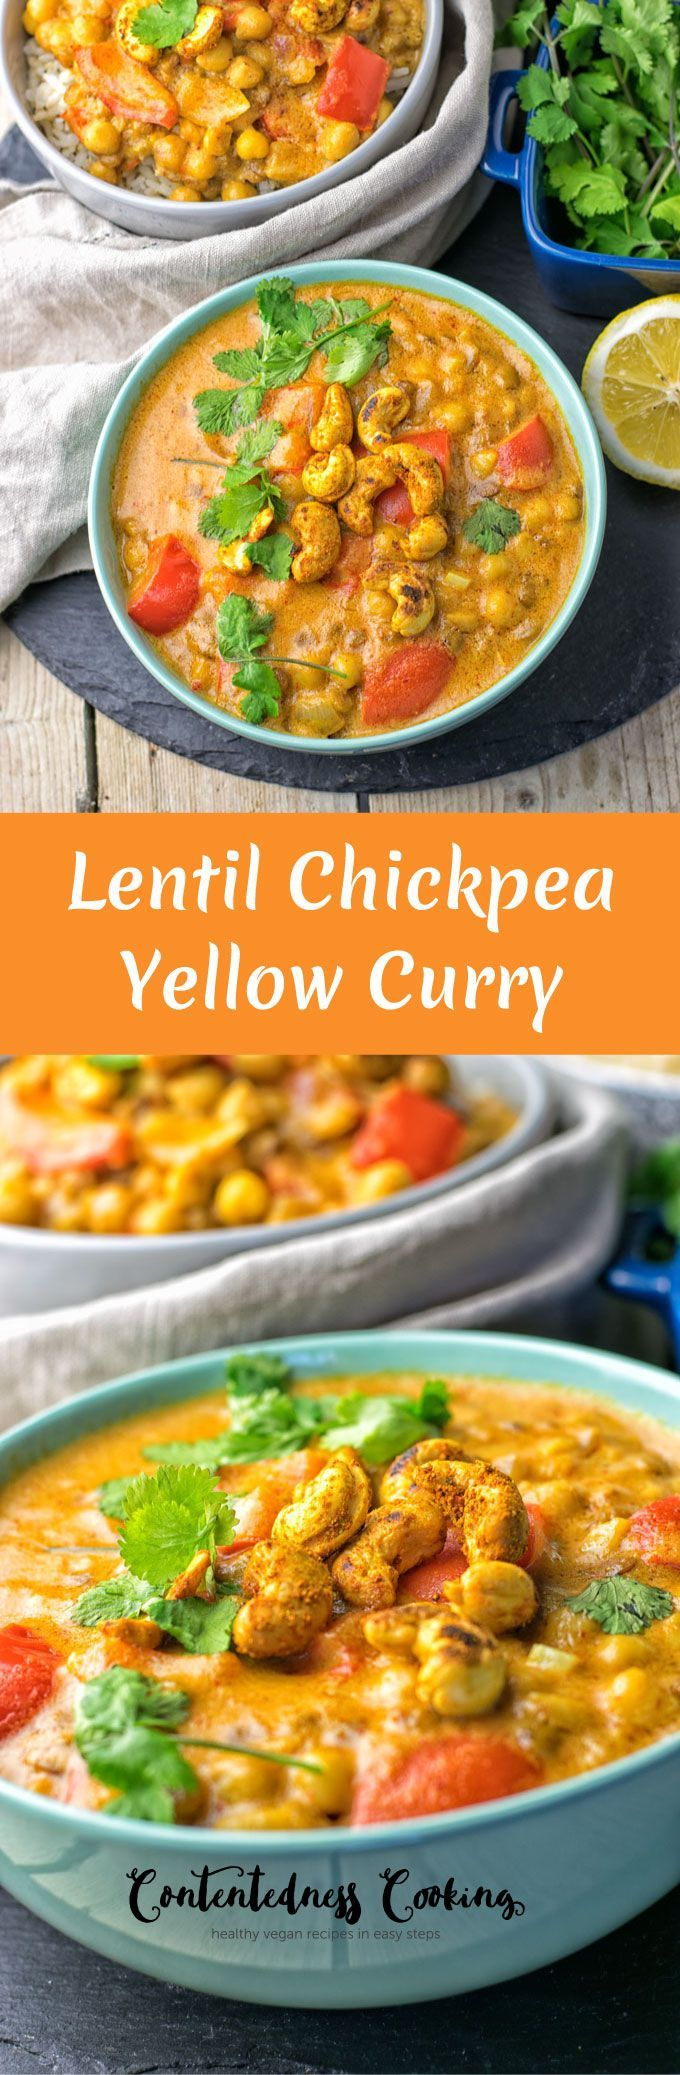 This Lentil Chickpea Yellow Curry is vegan and gluten free and you can make it with just 6 ingredients in 2 easy steps. Get ready for the most incredible, delicious plant-based meal, lunch and more.